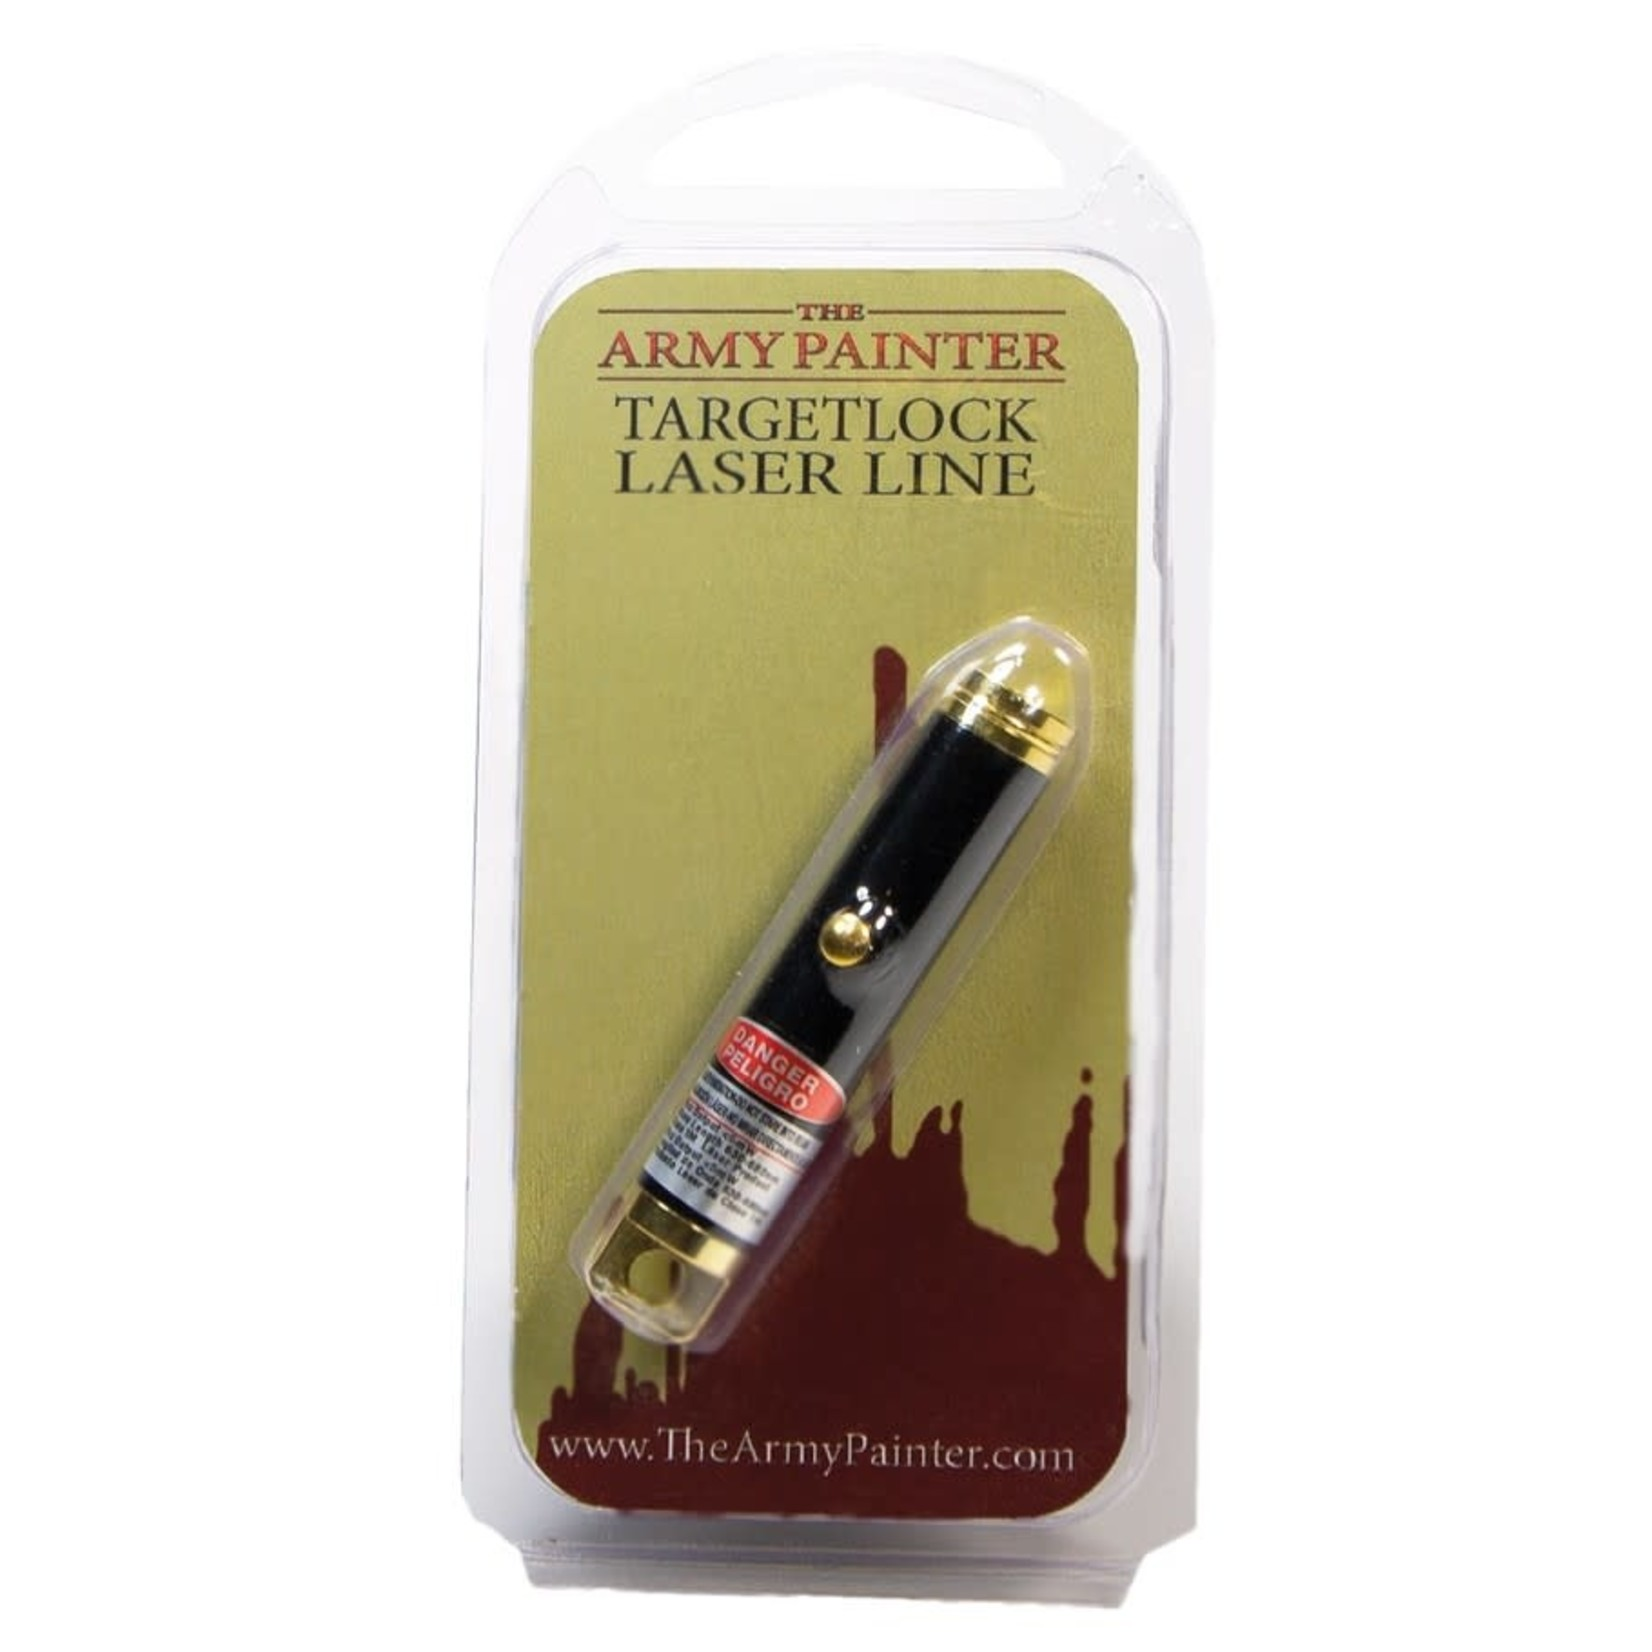 The Army Painter The Army Painter: TargetLock Laser Line